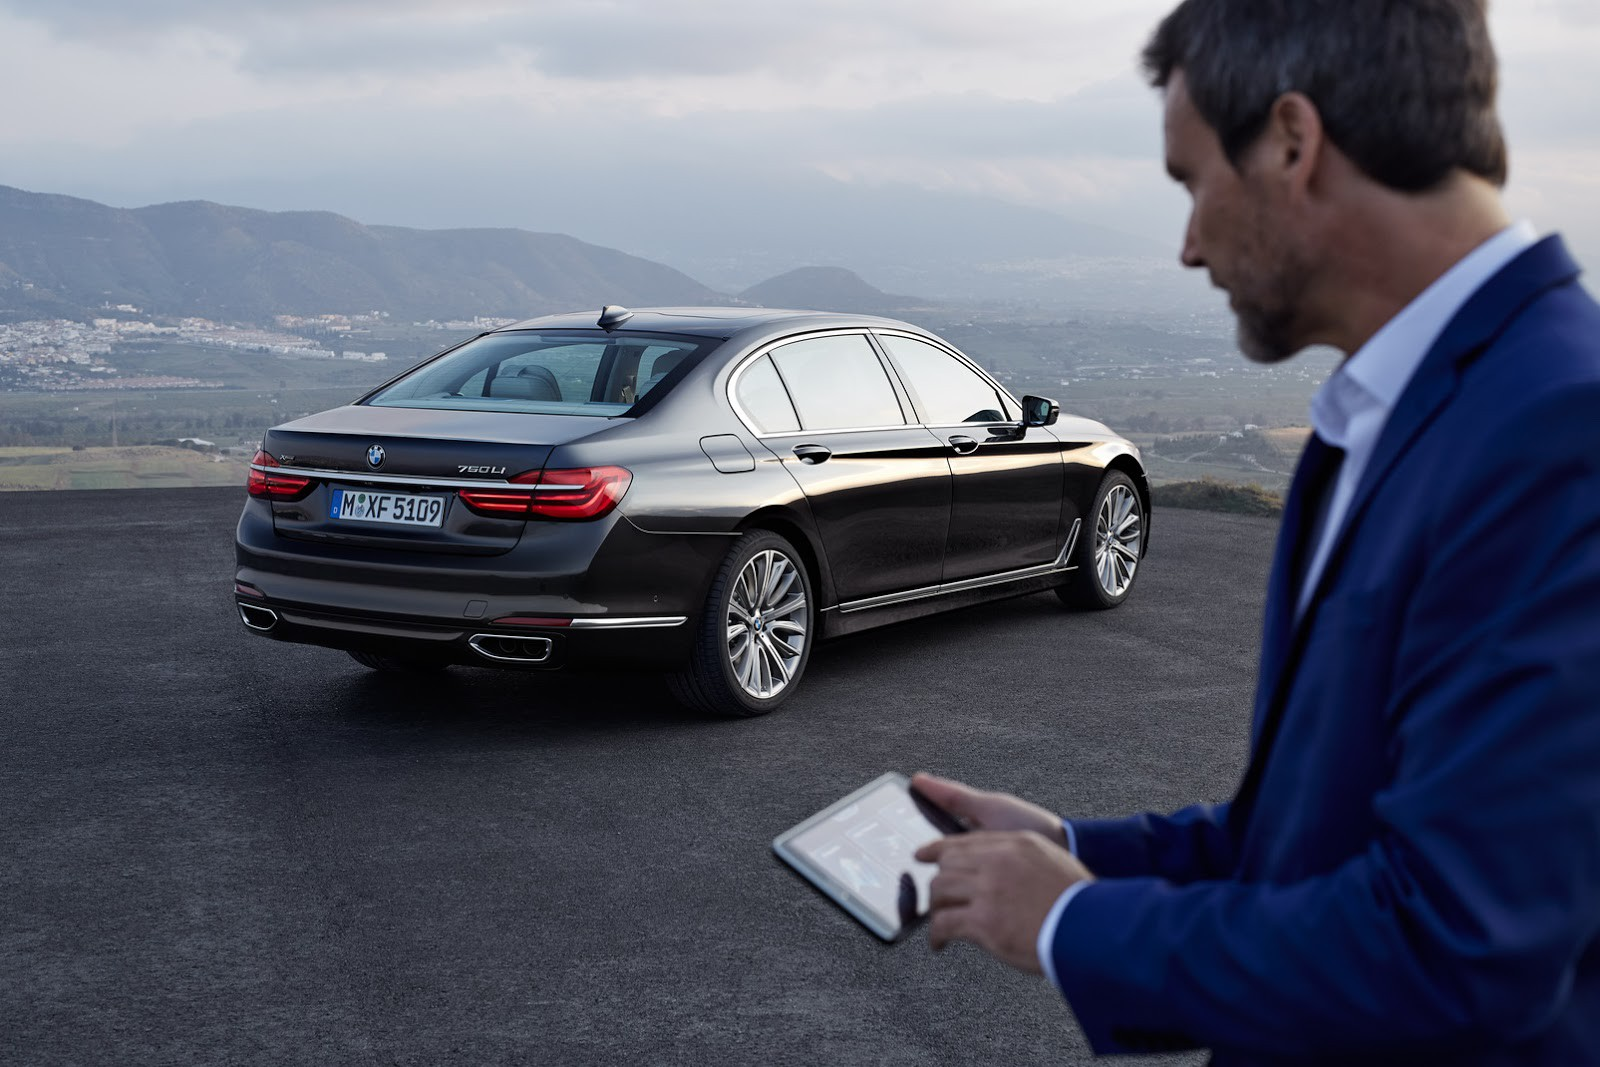 The new BMW 7 series